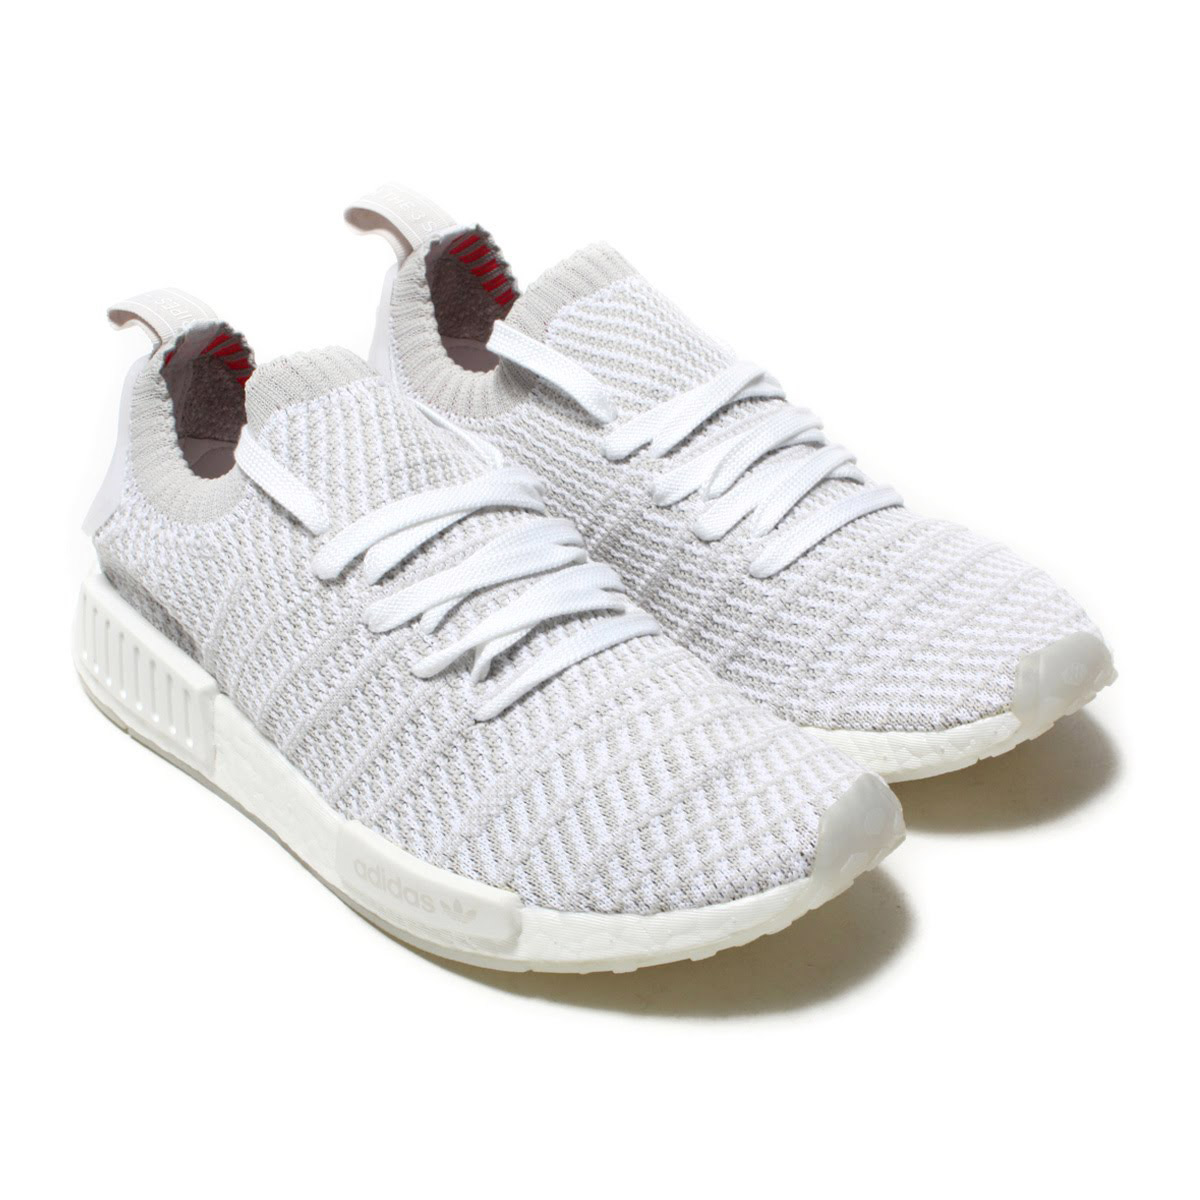 more photos f9410 5648a adidas Originals NMD_R1 STLT PK (Adidas originals N M D R1 STLT PK) Running  White/Grey One/Solar Pink 18SS-I